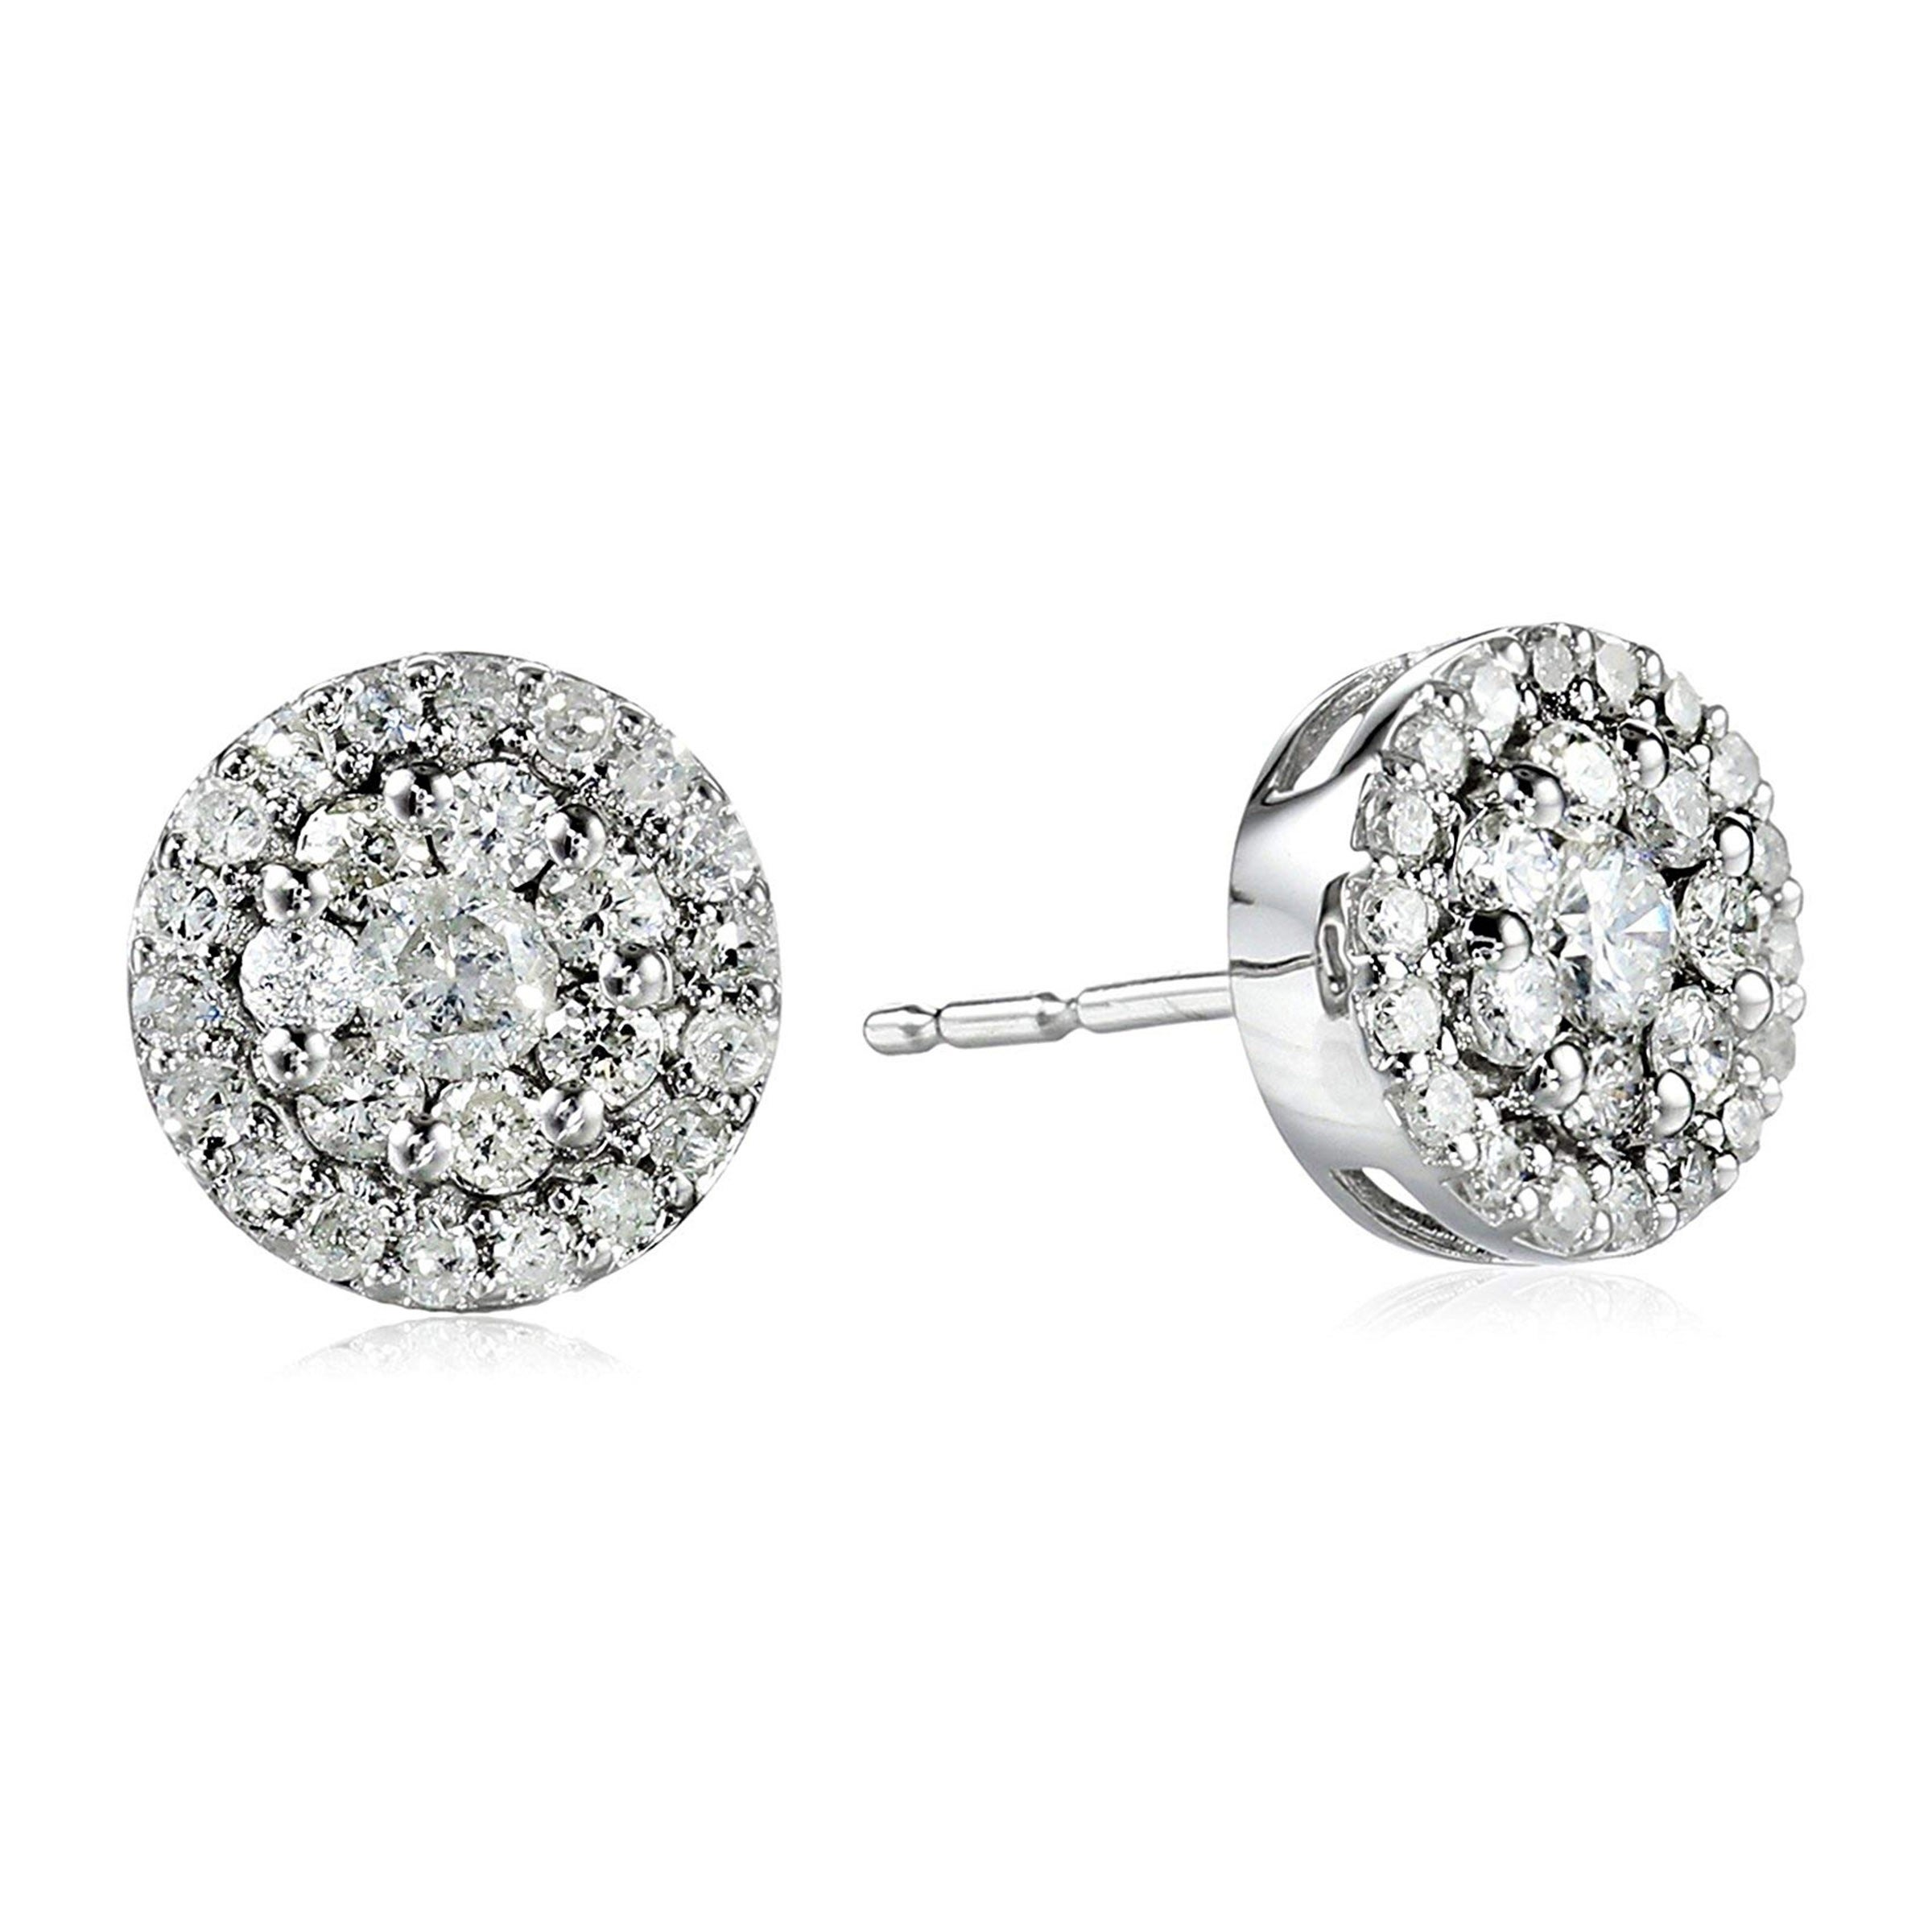 2Ct Round Cut Diamond Cluster Stud Earrings Screw Back 10K Yellow Gold Over